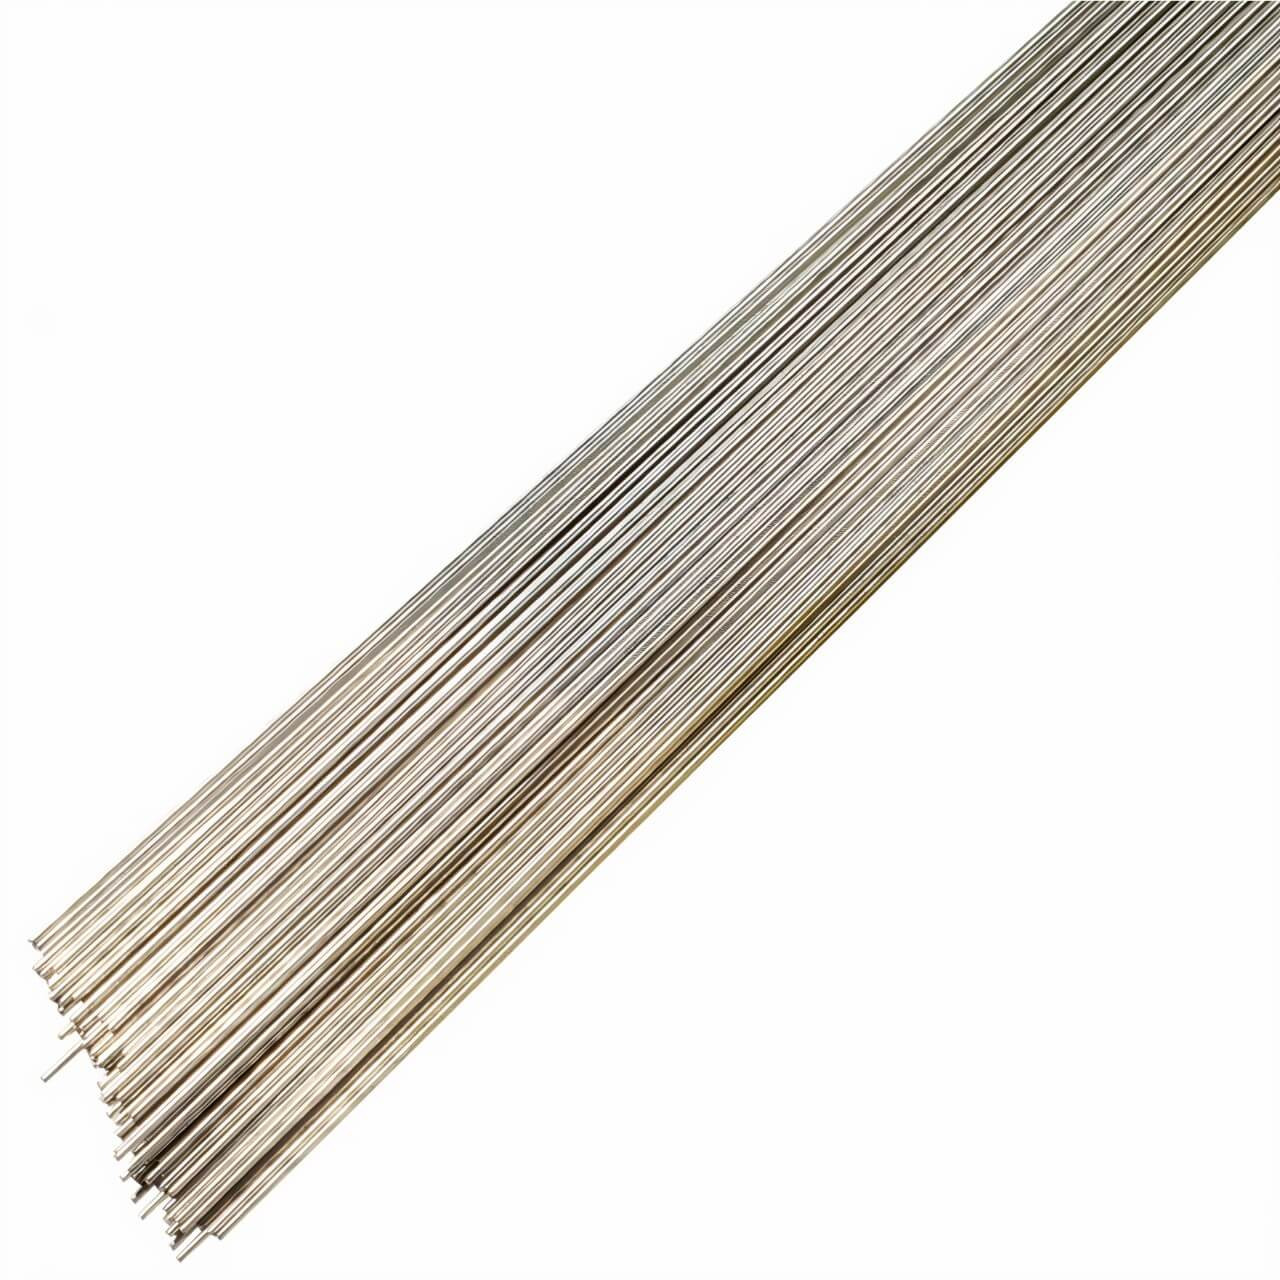 1.6mm 2209 Stainless Steel Tig Wire /kg